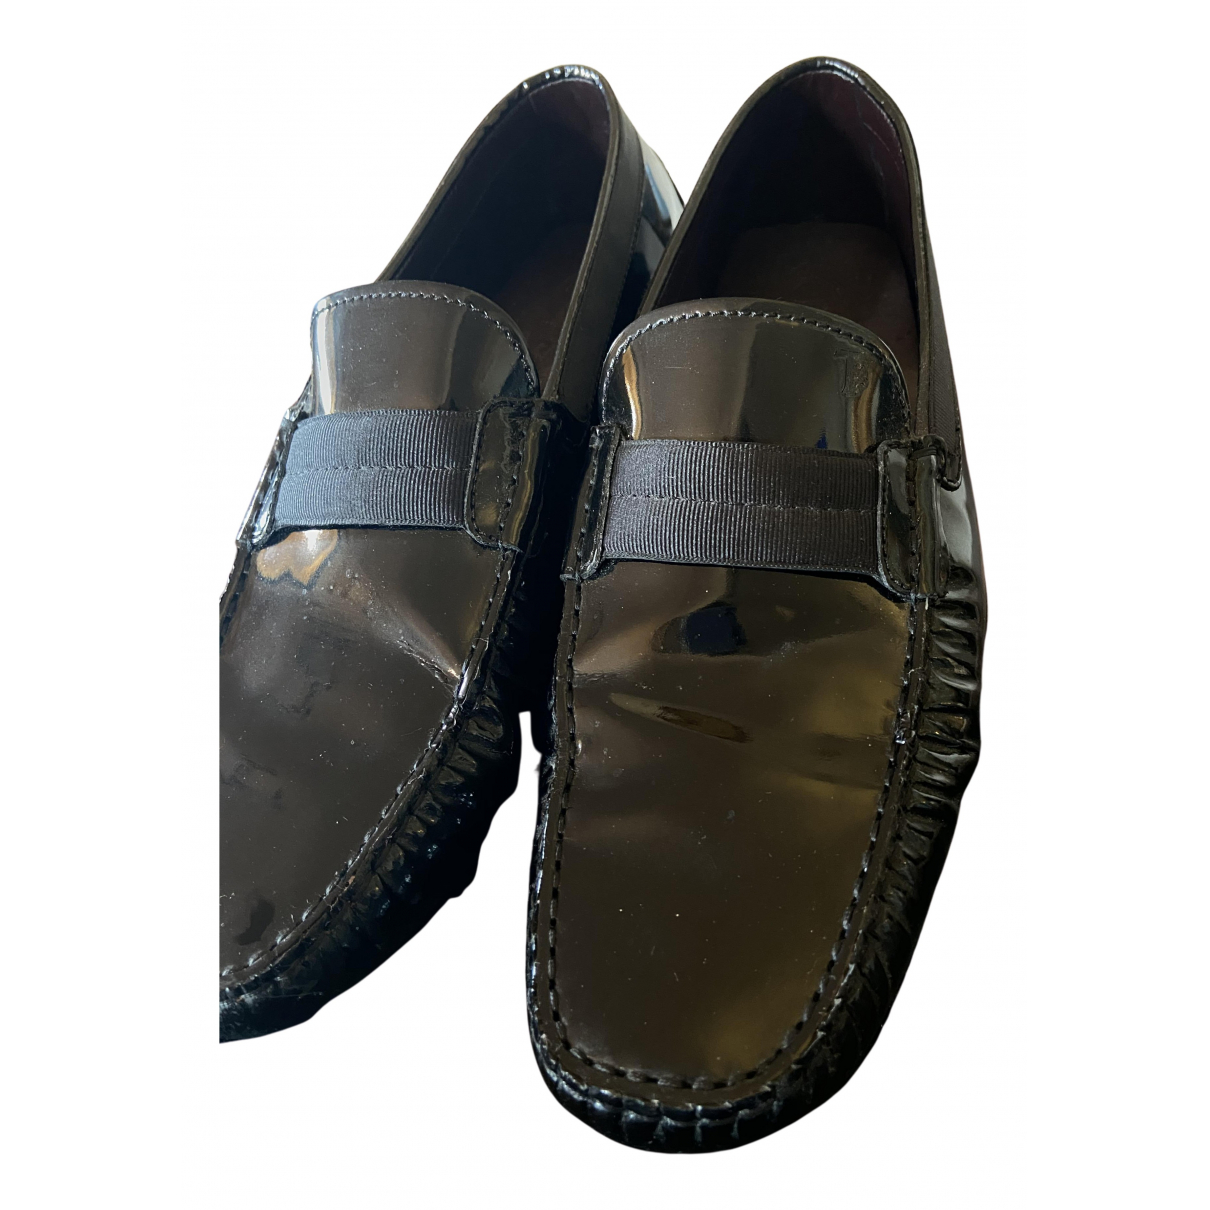 Tod's N Black Patent leather Flats for Men 10 UK